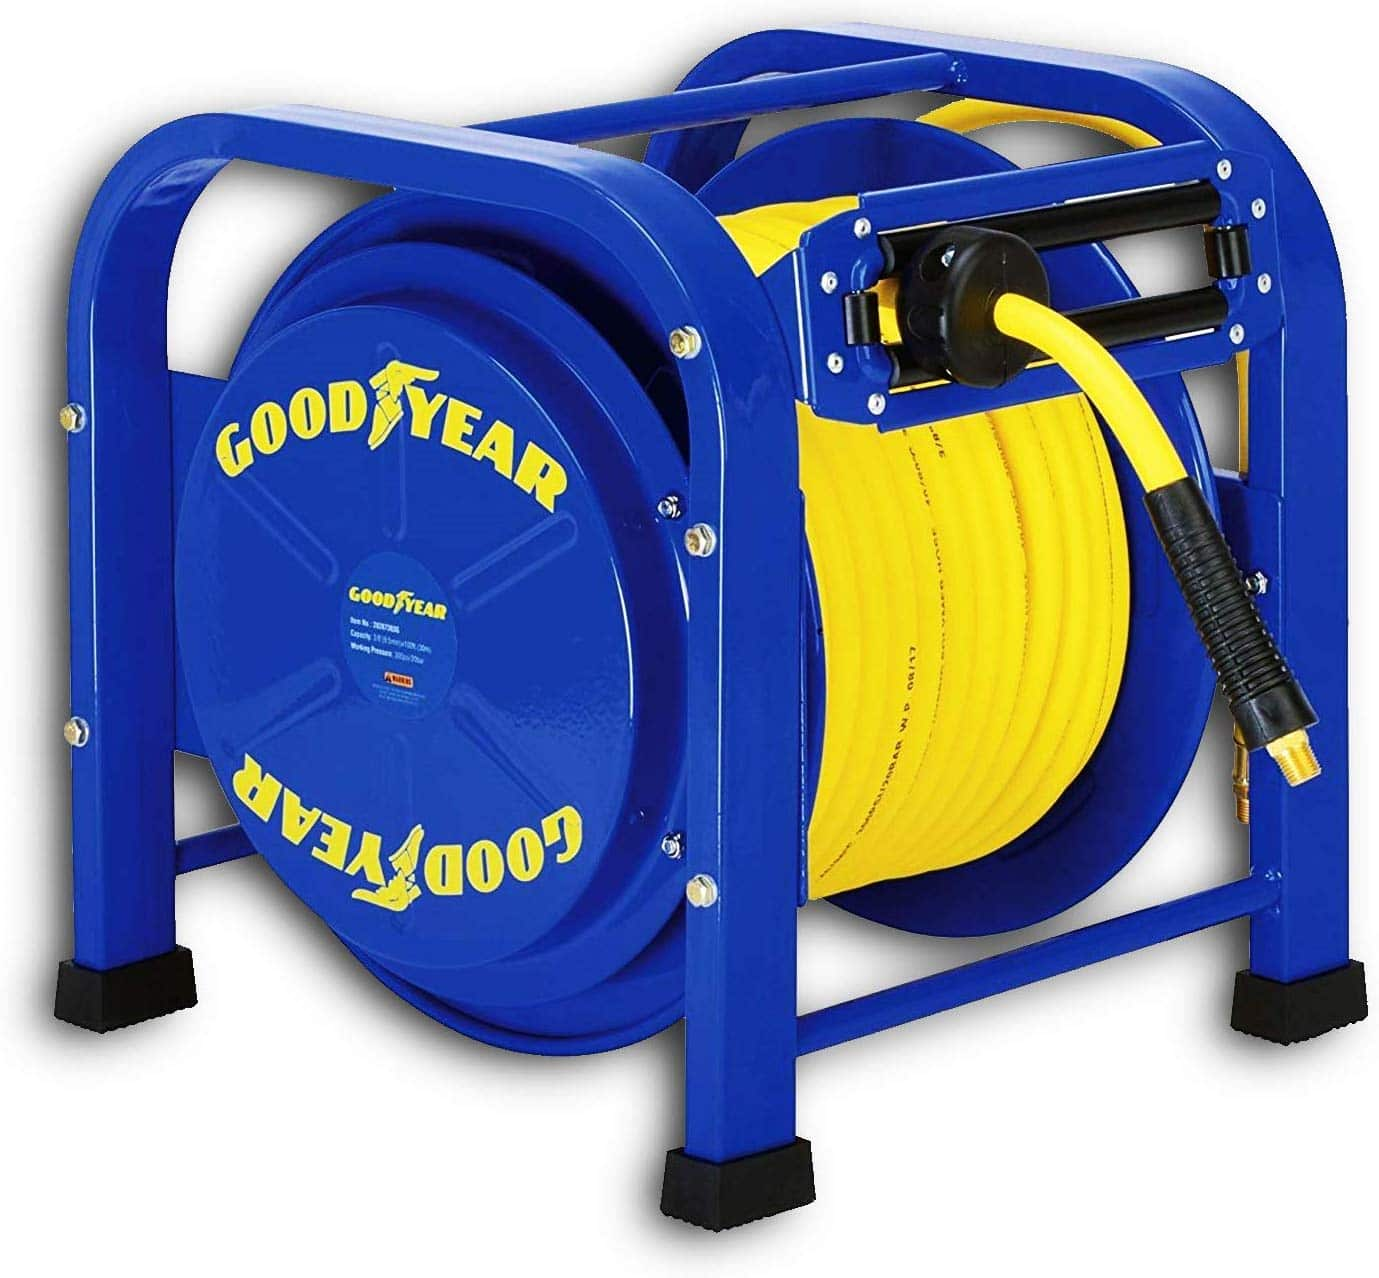 12.GOODYEAR Air-Hose-Reel Retractable 3 8 Inch x 100 Feet 300 Psi 20 Bar Spring Driven Steel Elite Portable Quad Pod Heavy Duty Industrial Longest Premium